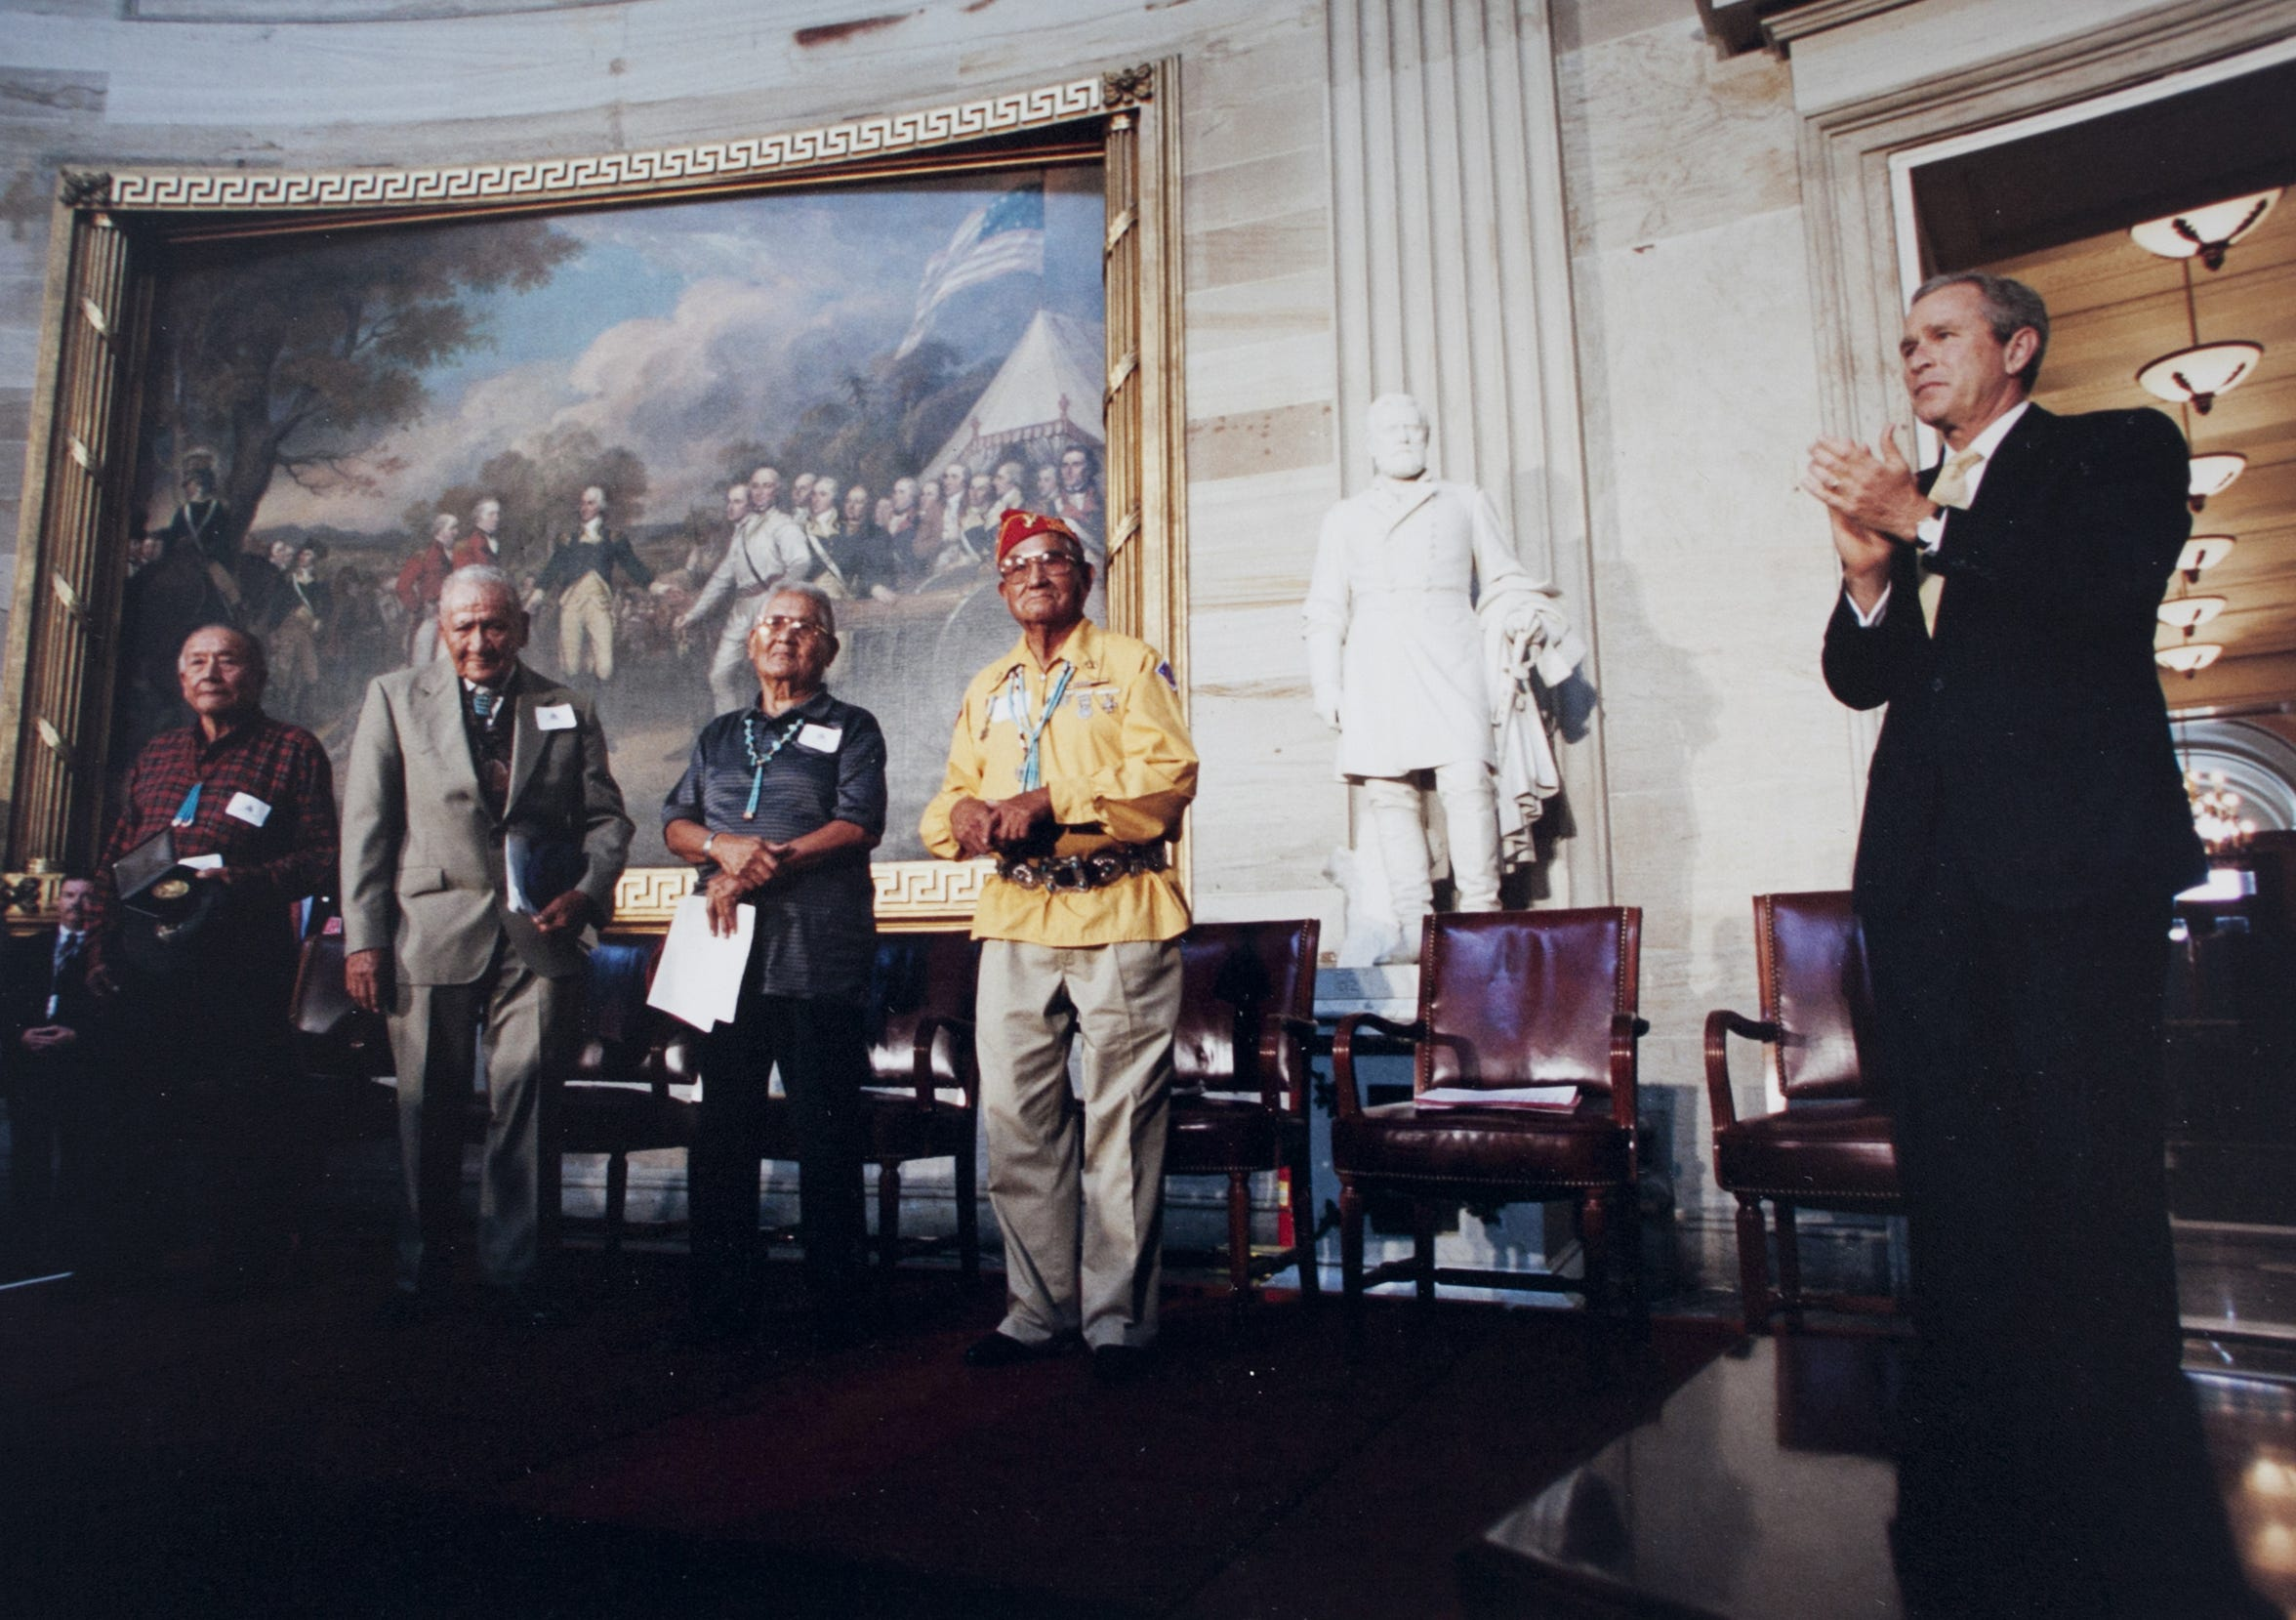 Navajo Code Talker Chester Nez (center) during the  Congressional Gold Medal Ceremony on  July 26, 2001.  From left are Dale June, Lloyd Oliver, Chester Nez, John Brown Jr. and President George Bush.